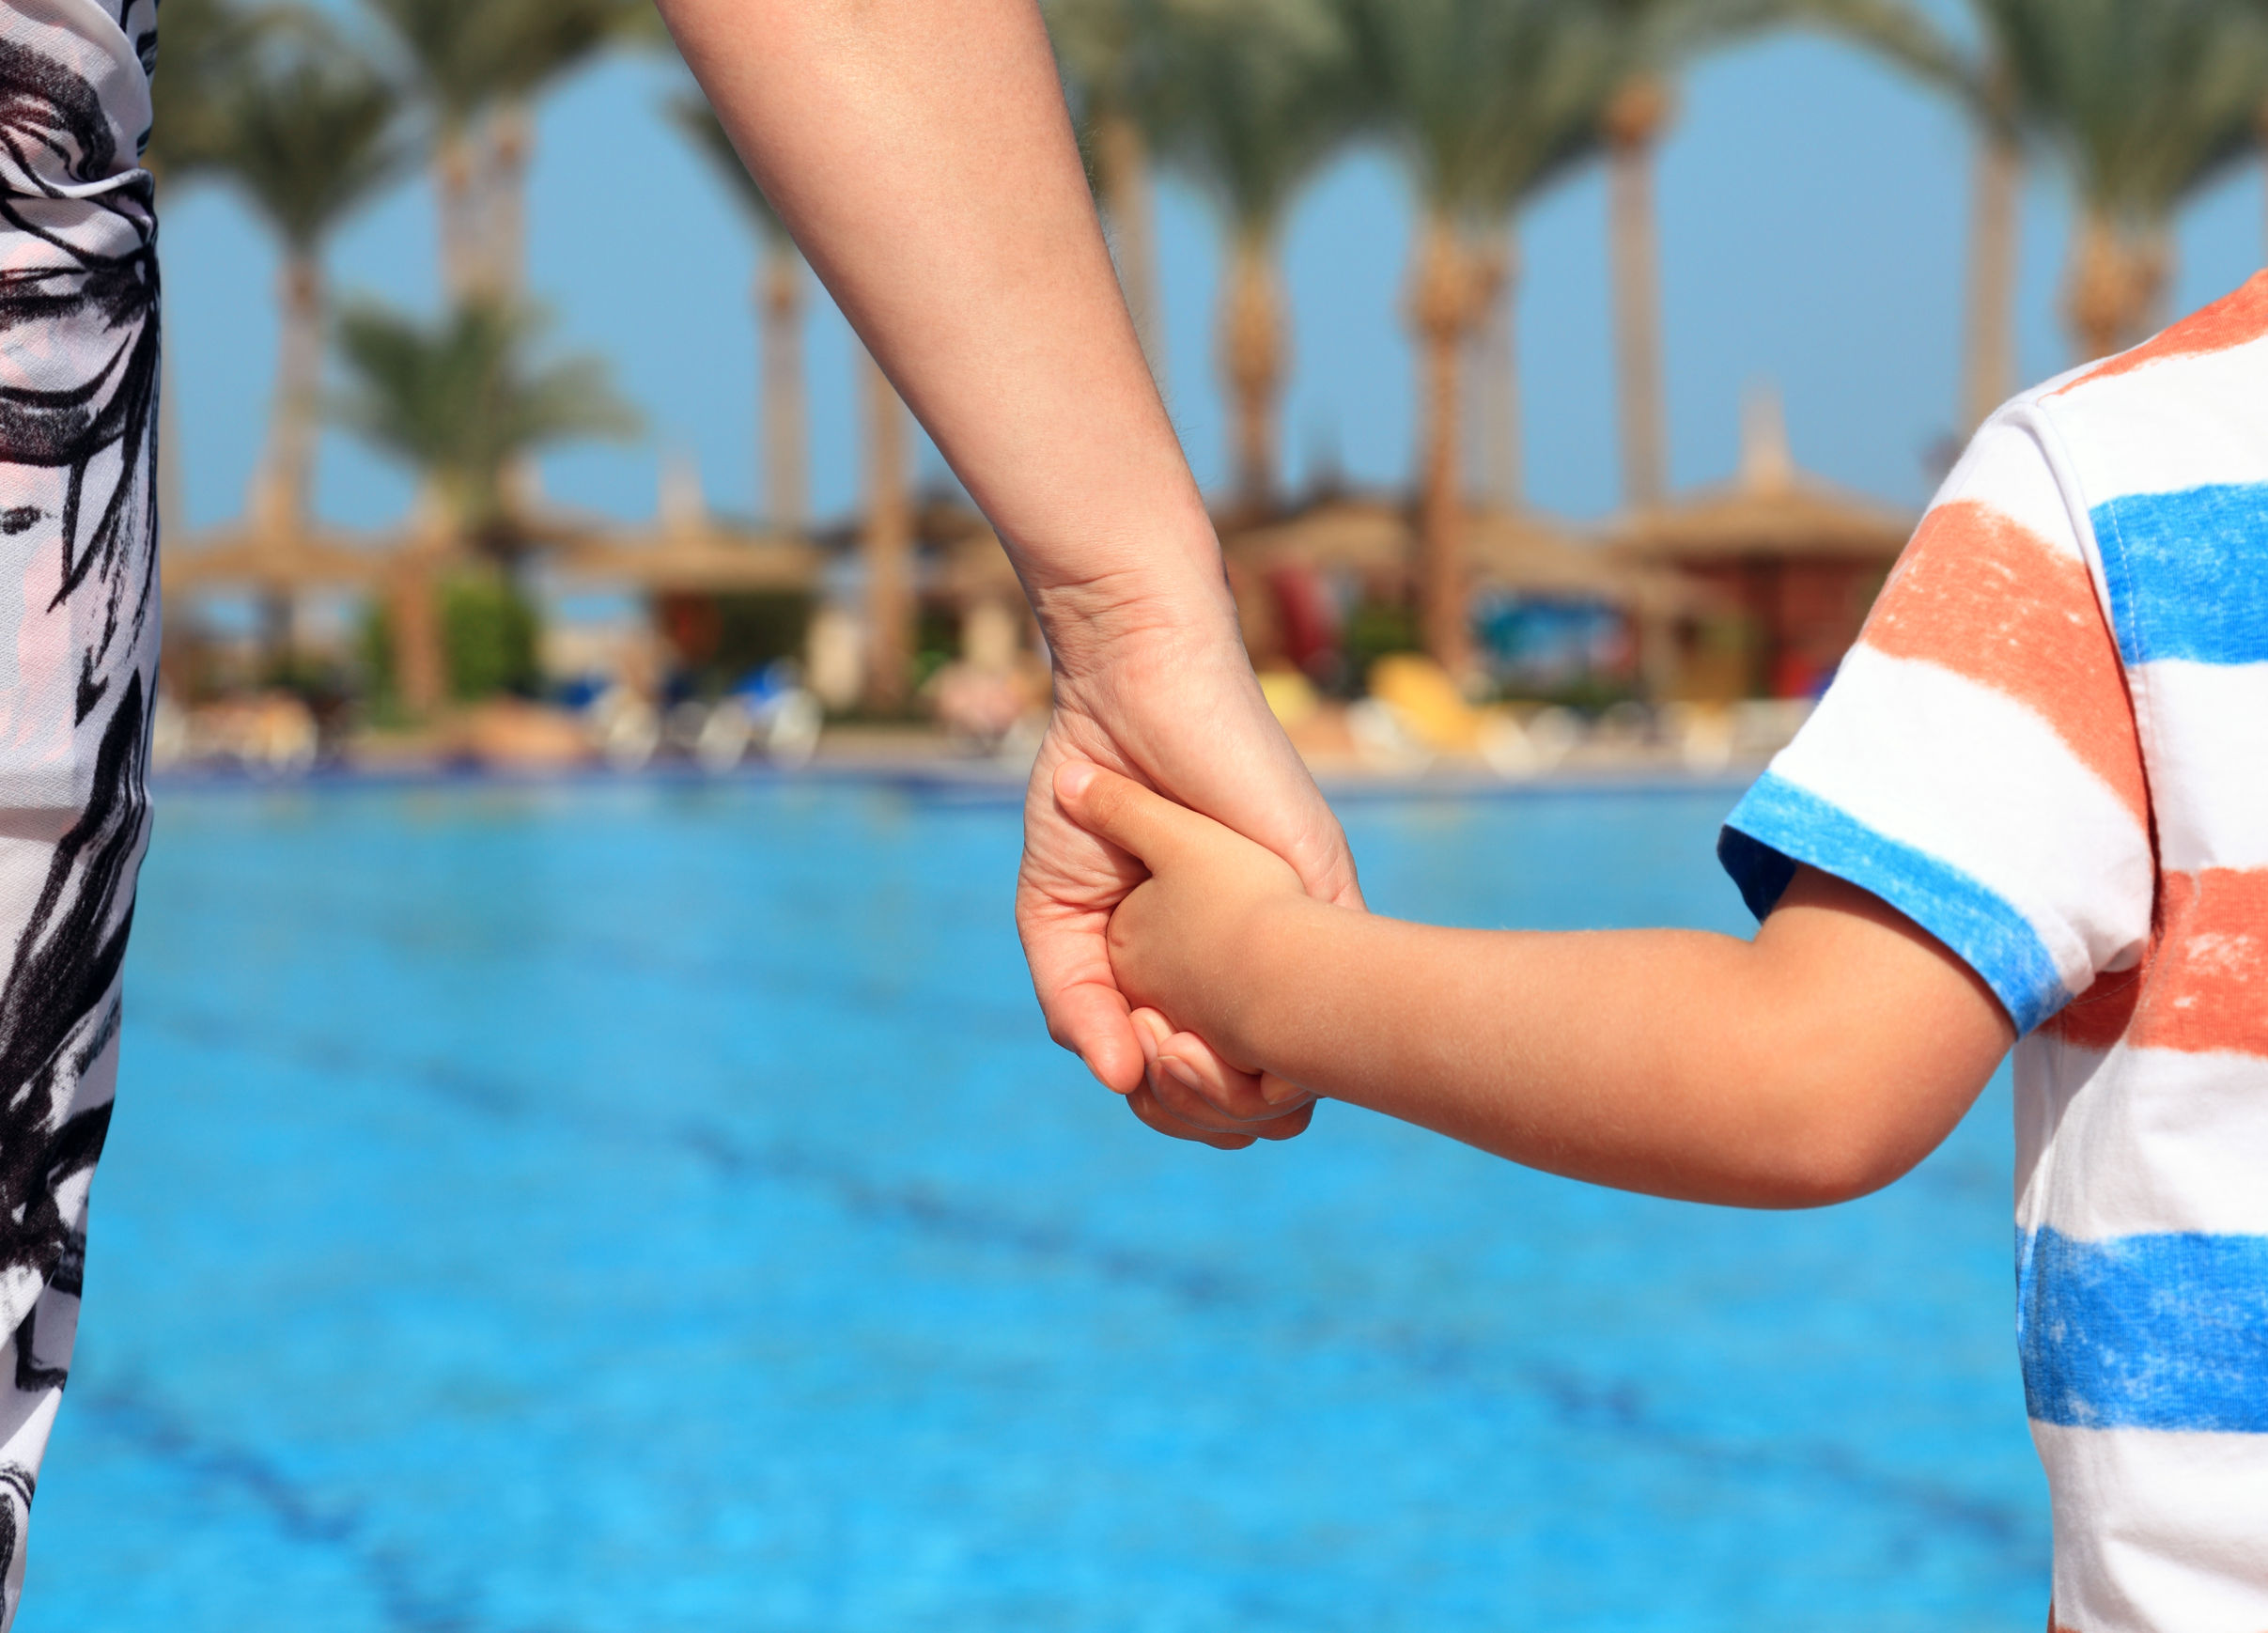 Families struggling to afford swimming lessons as water tragedy strikes